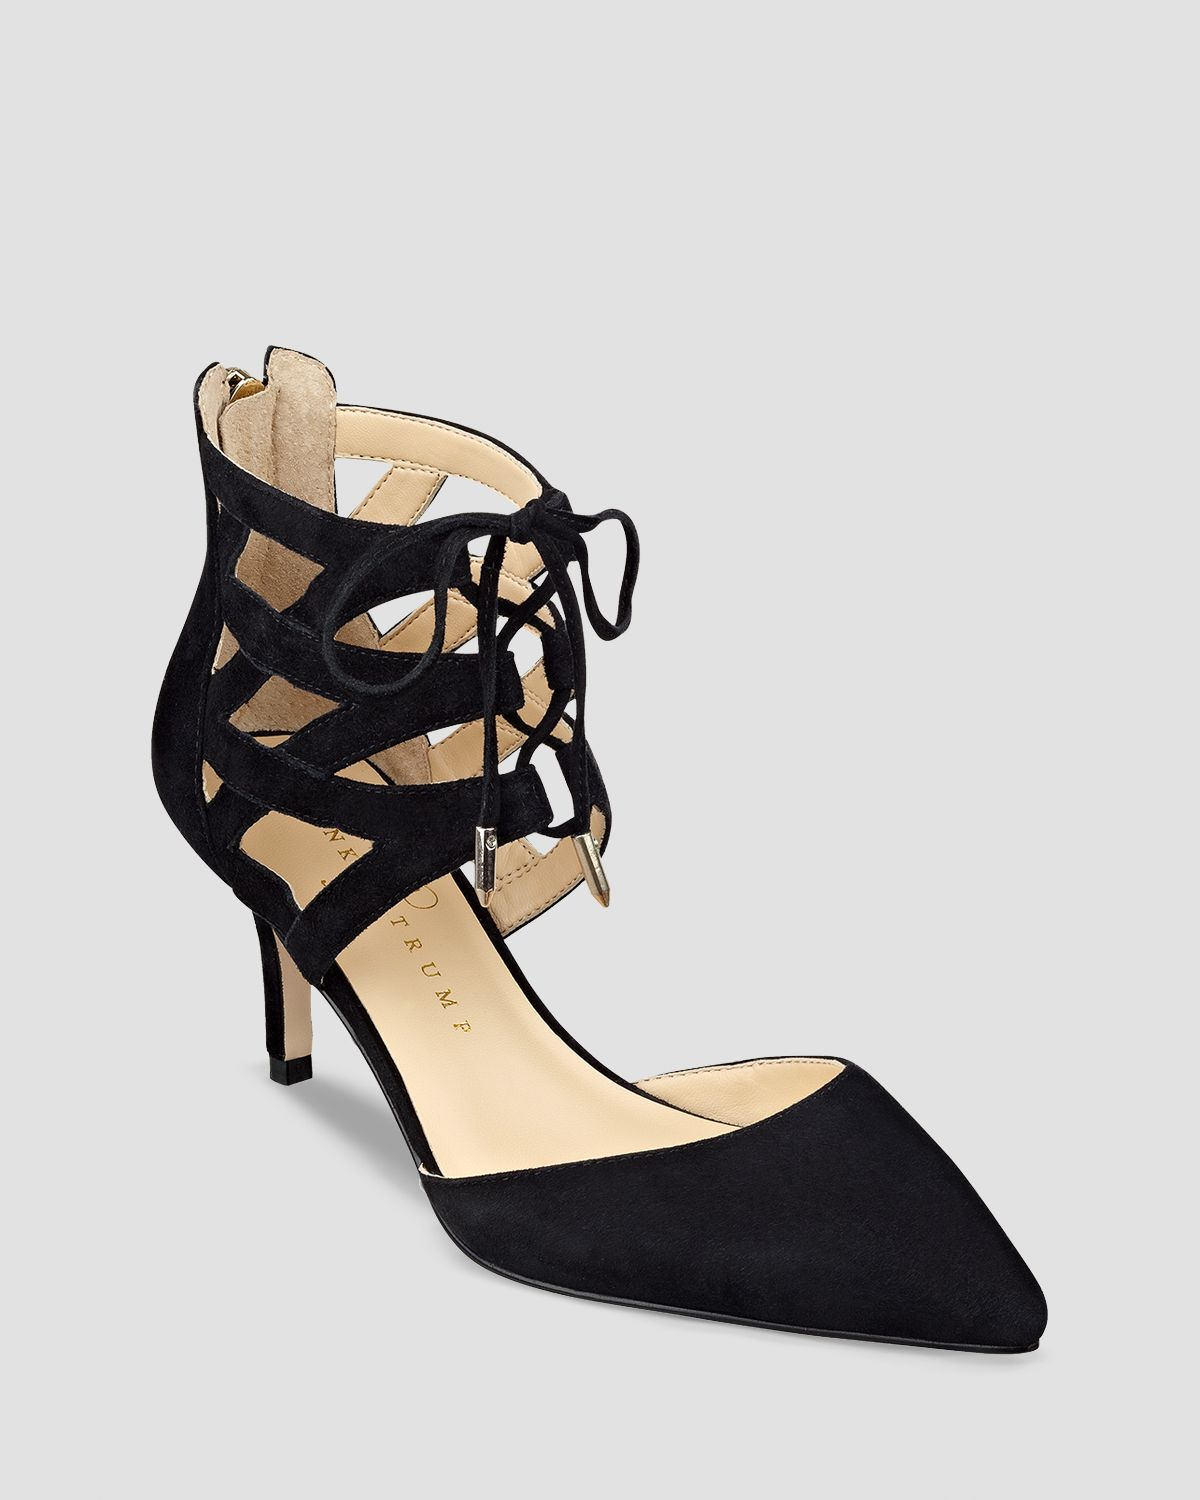 Lyst - Ivanka Trump Pointed Toe Lace Up Pumps